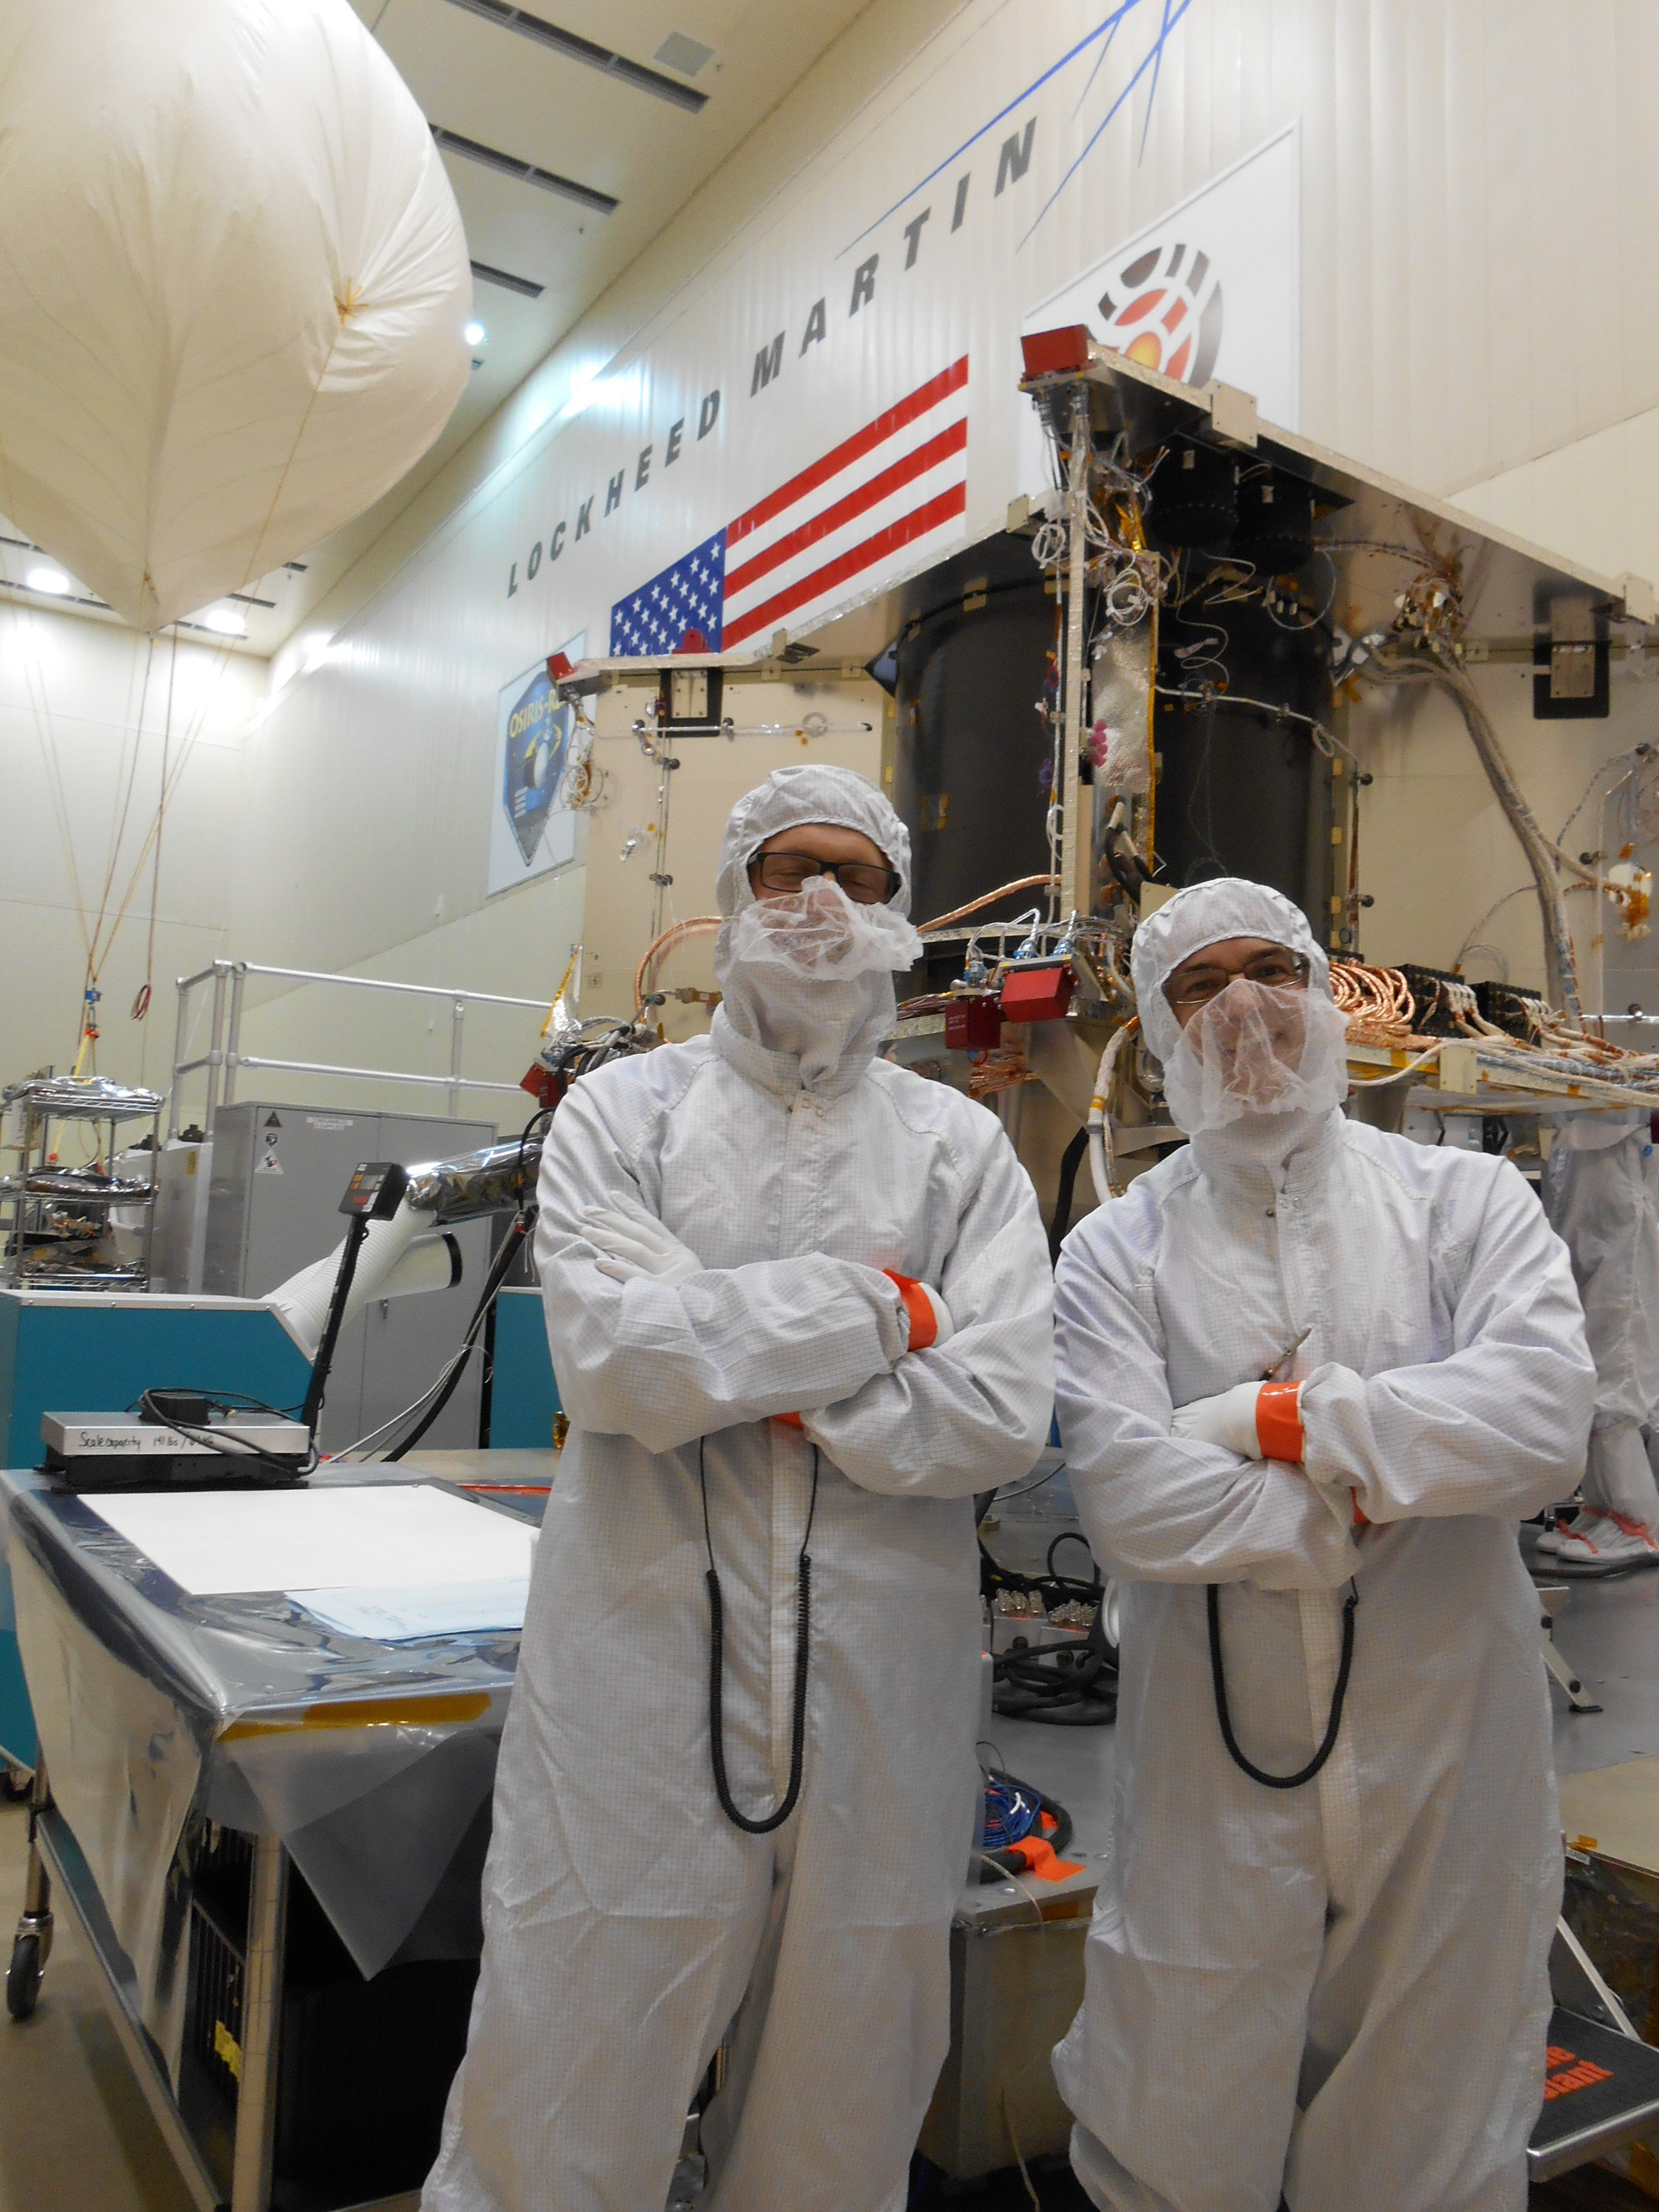 Kevin Walsh (left) and I pose for a shot with OSIRIS-REx in the background.